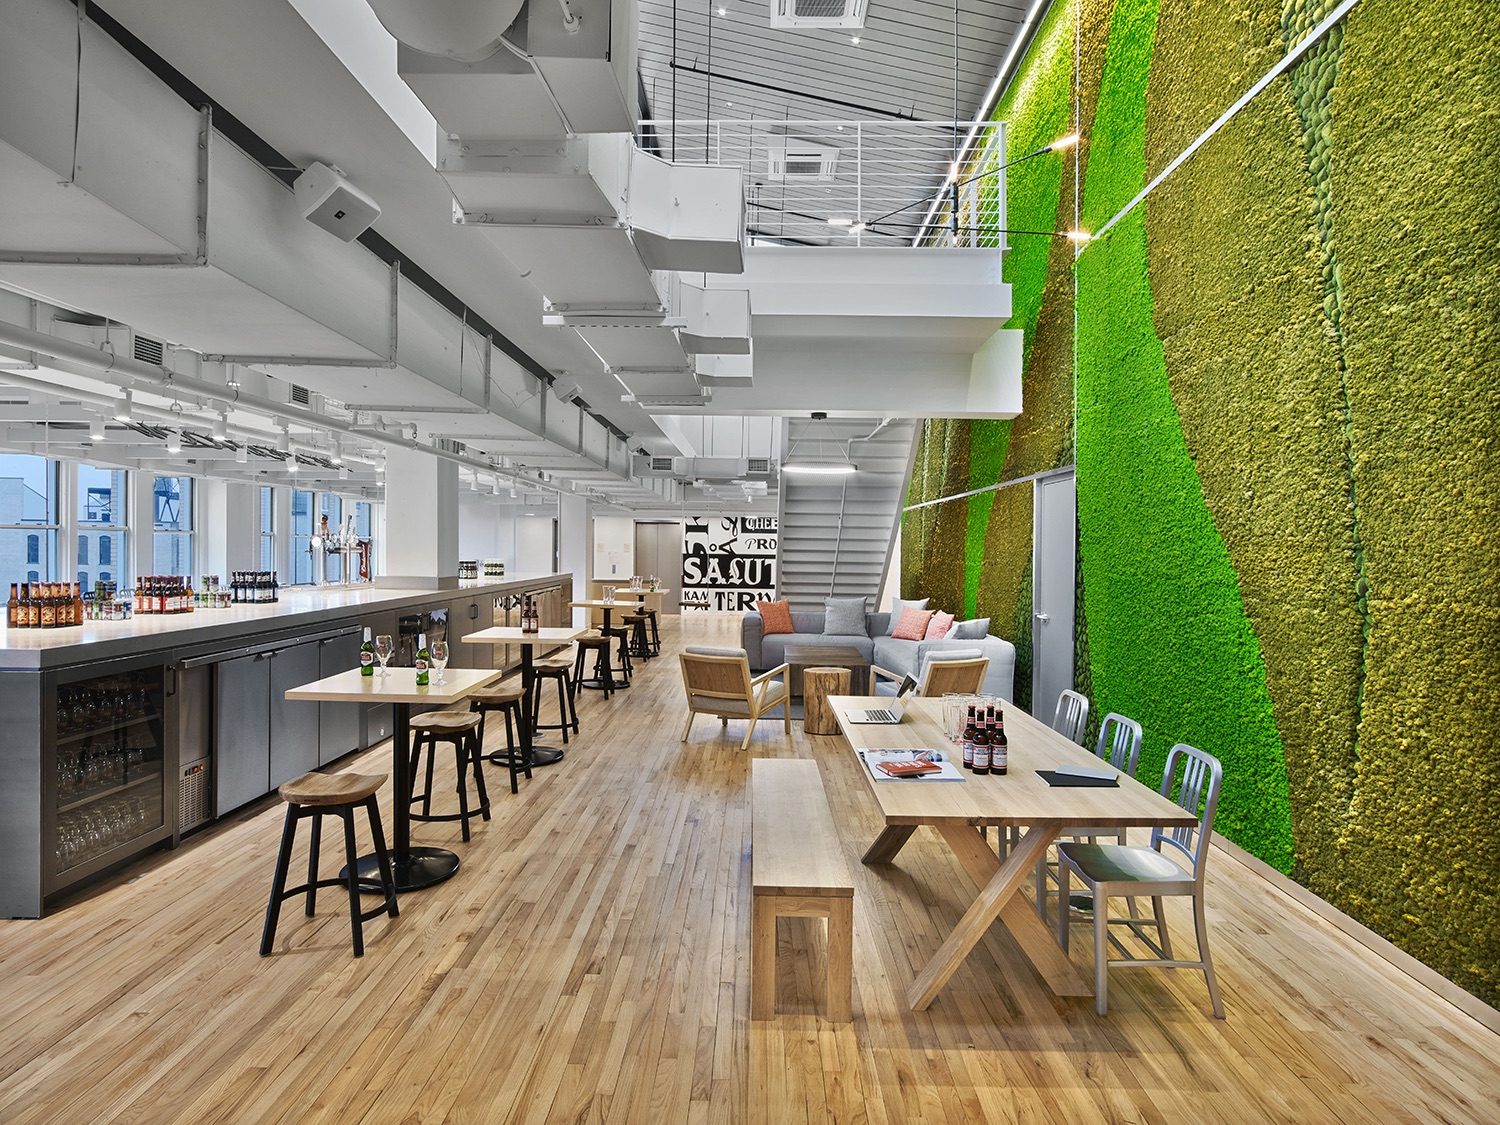 anheuser-busch-nyc-office-5